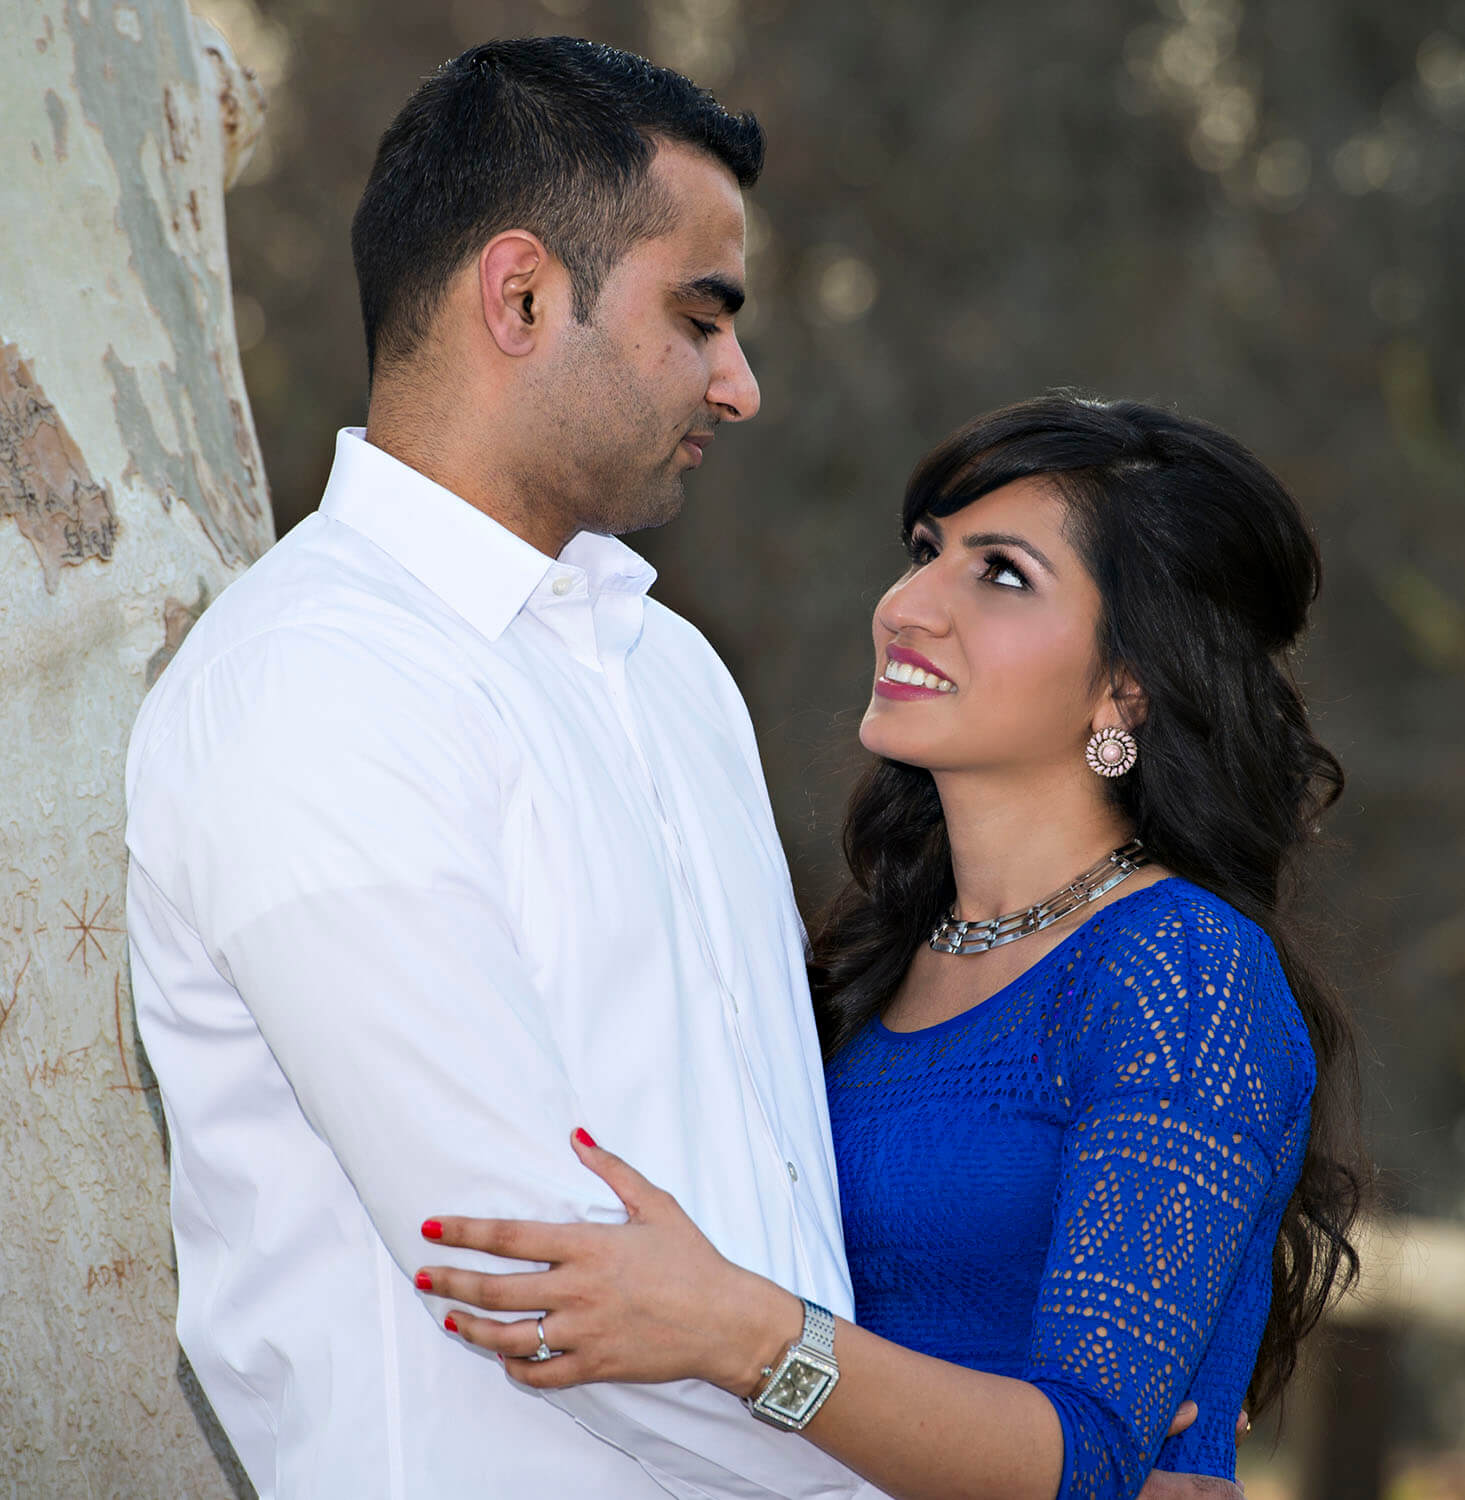 The best engagement photography captures the happy Bakersfield couple.